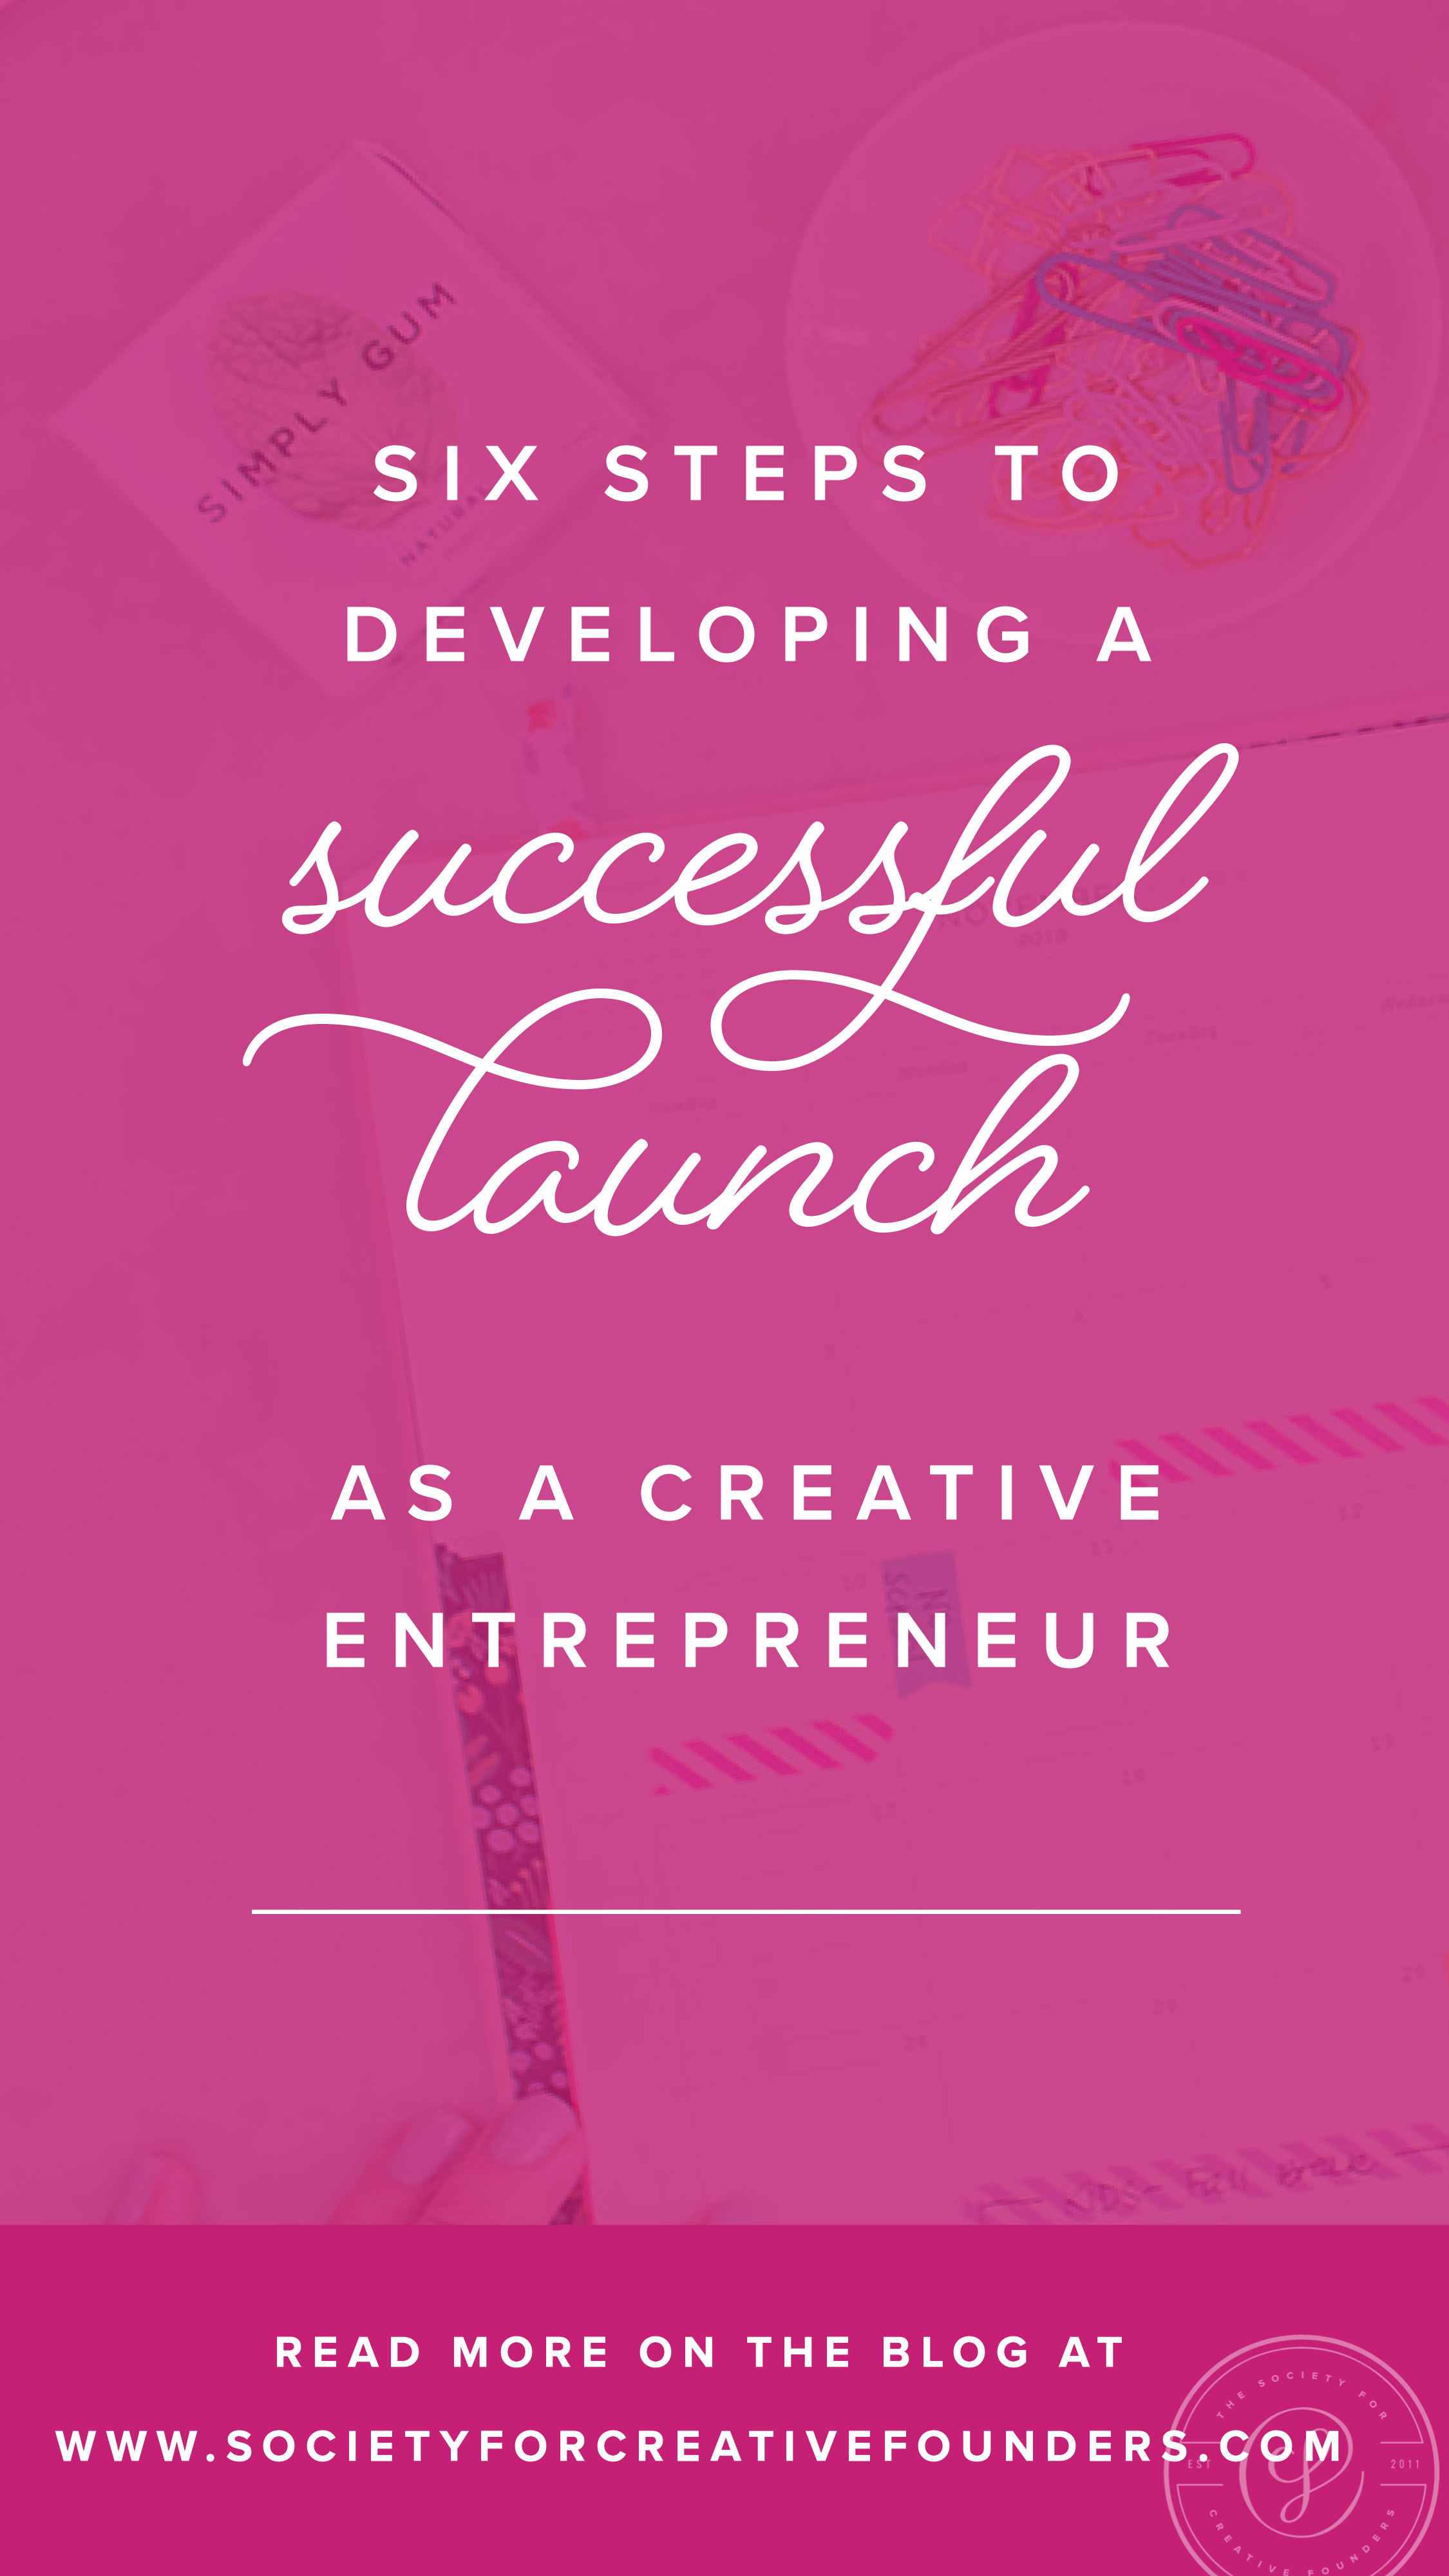 How to make a launch successful - Society for Creative Founders